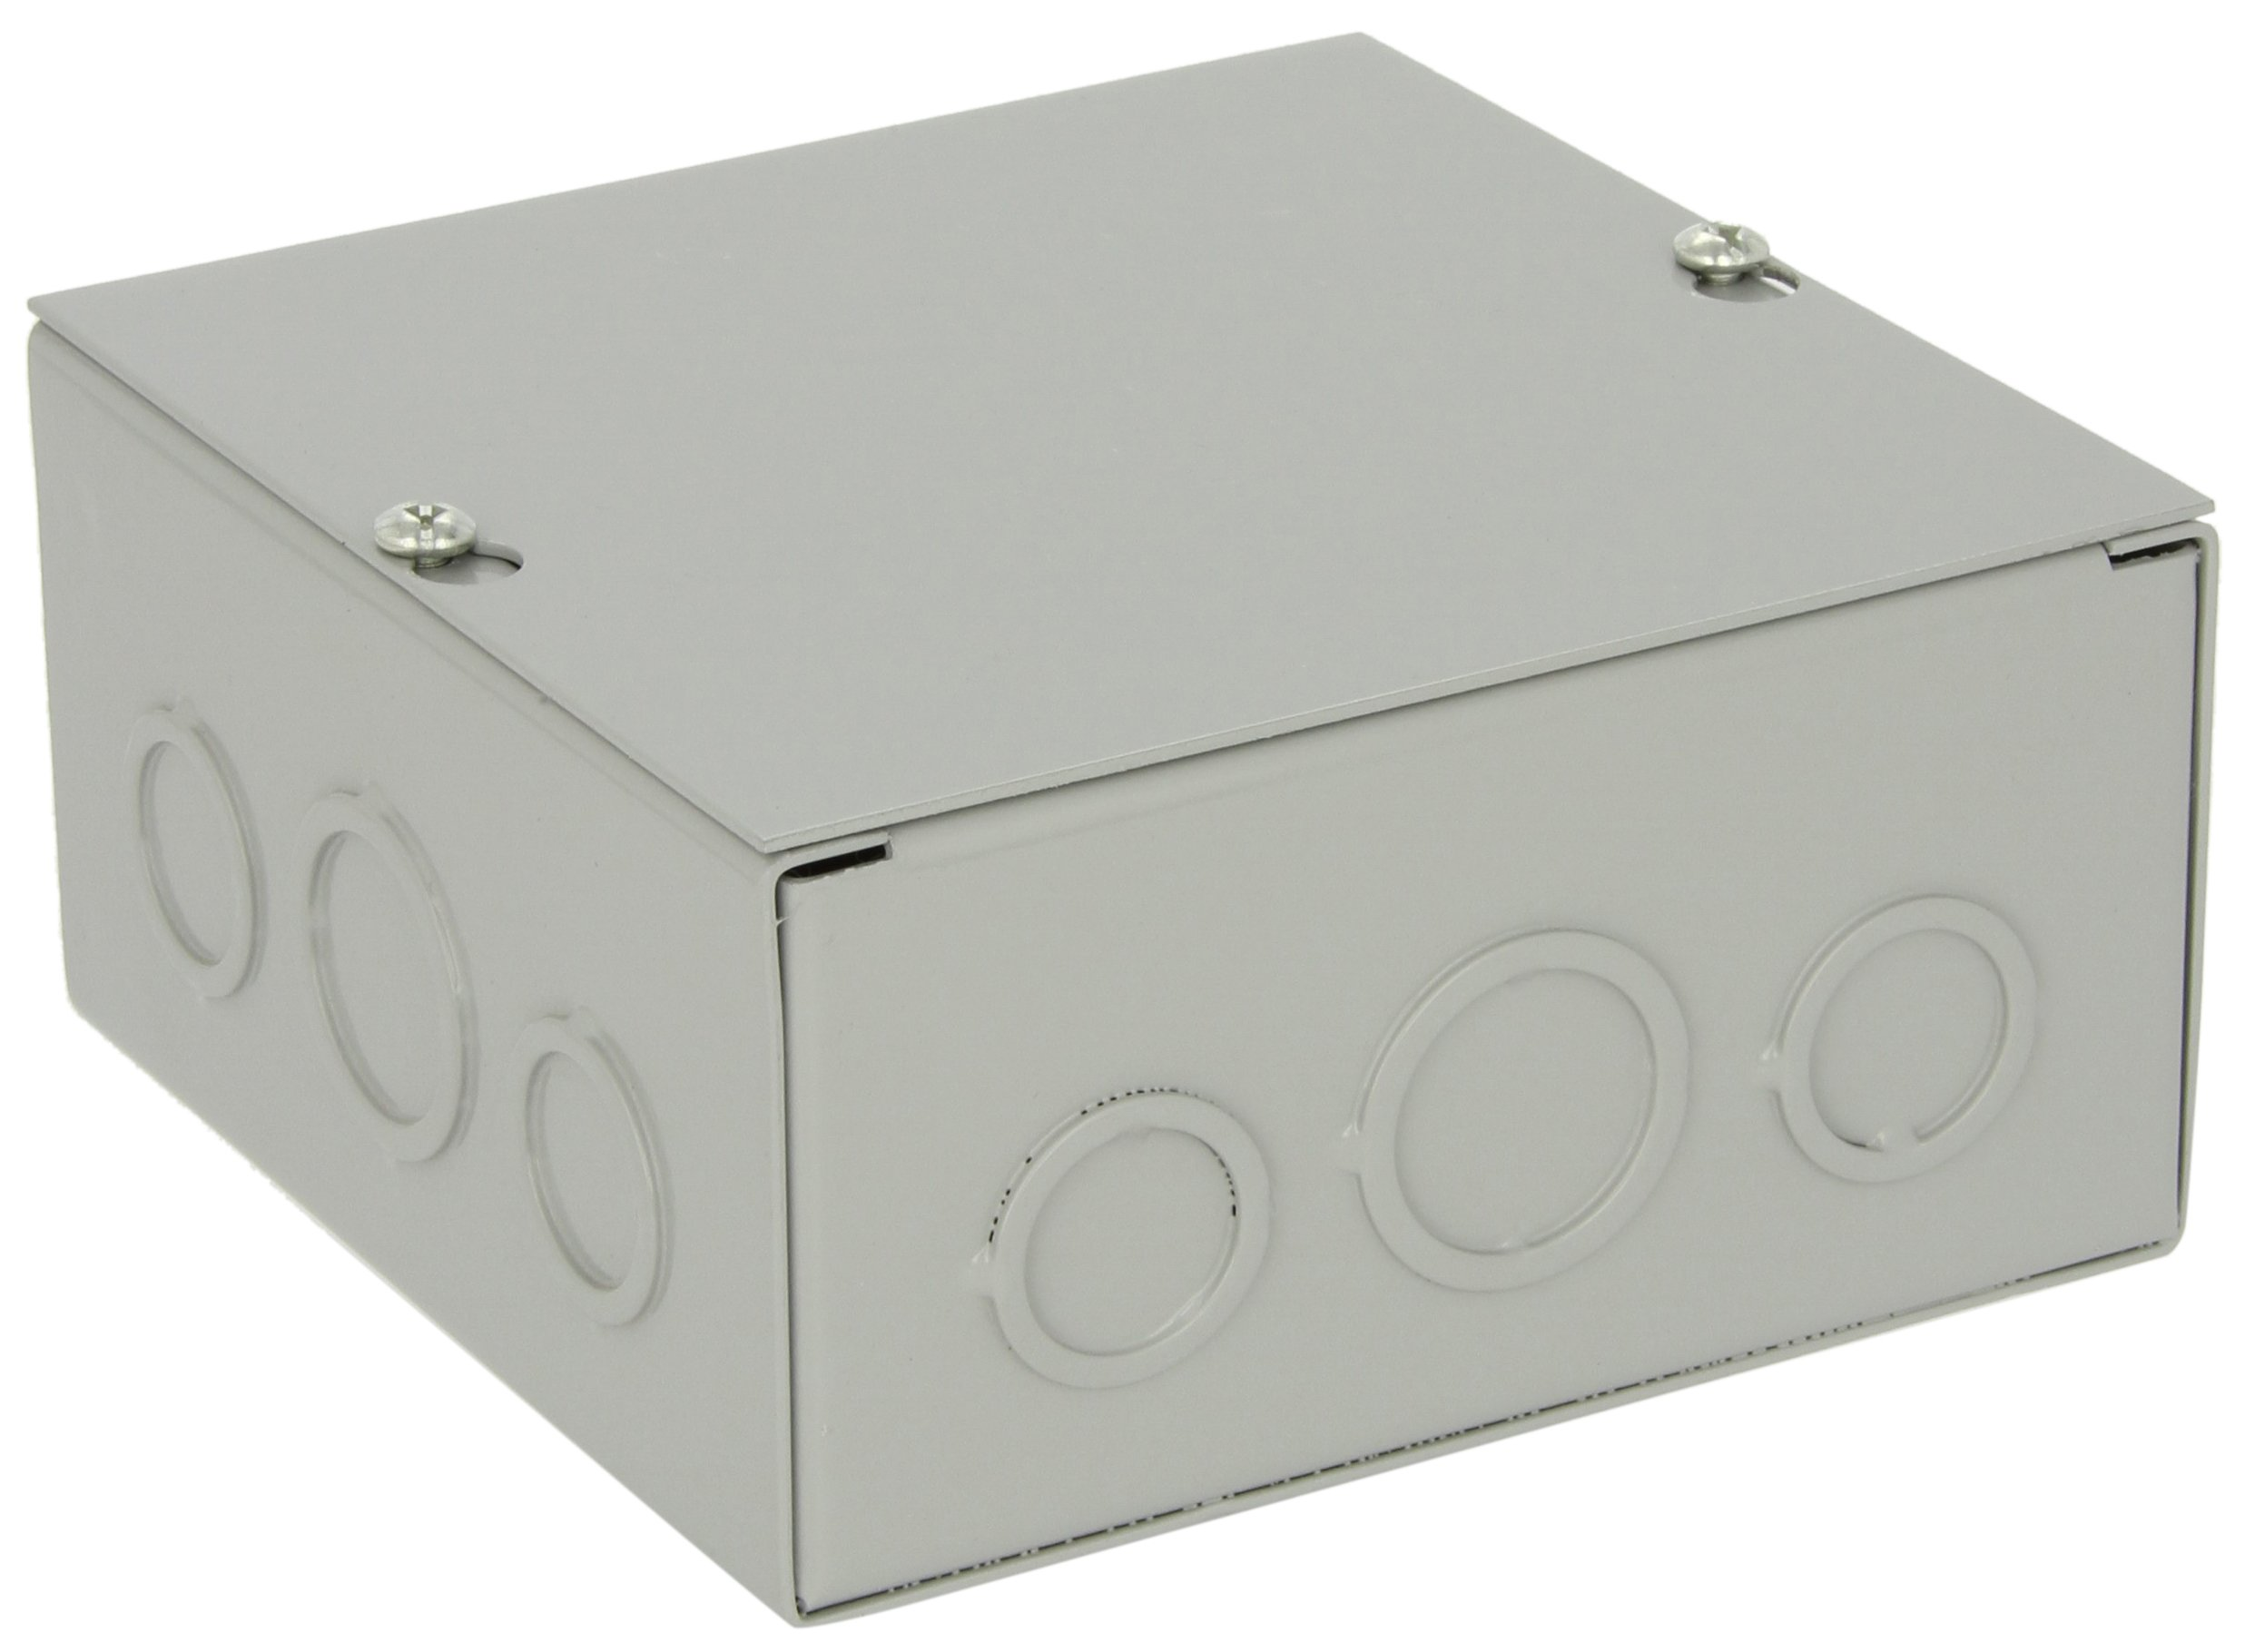 BUD Industries JB-3954-KO Steel NEMA 1 Sheet Metal Junction Box with Knockout and Lift-off Screw Cover, 6'' Width x 6'' Height x 3'' Depth, Gray Finish